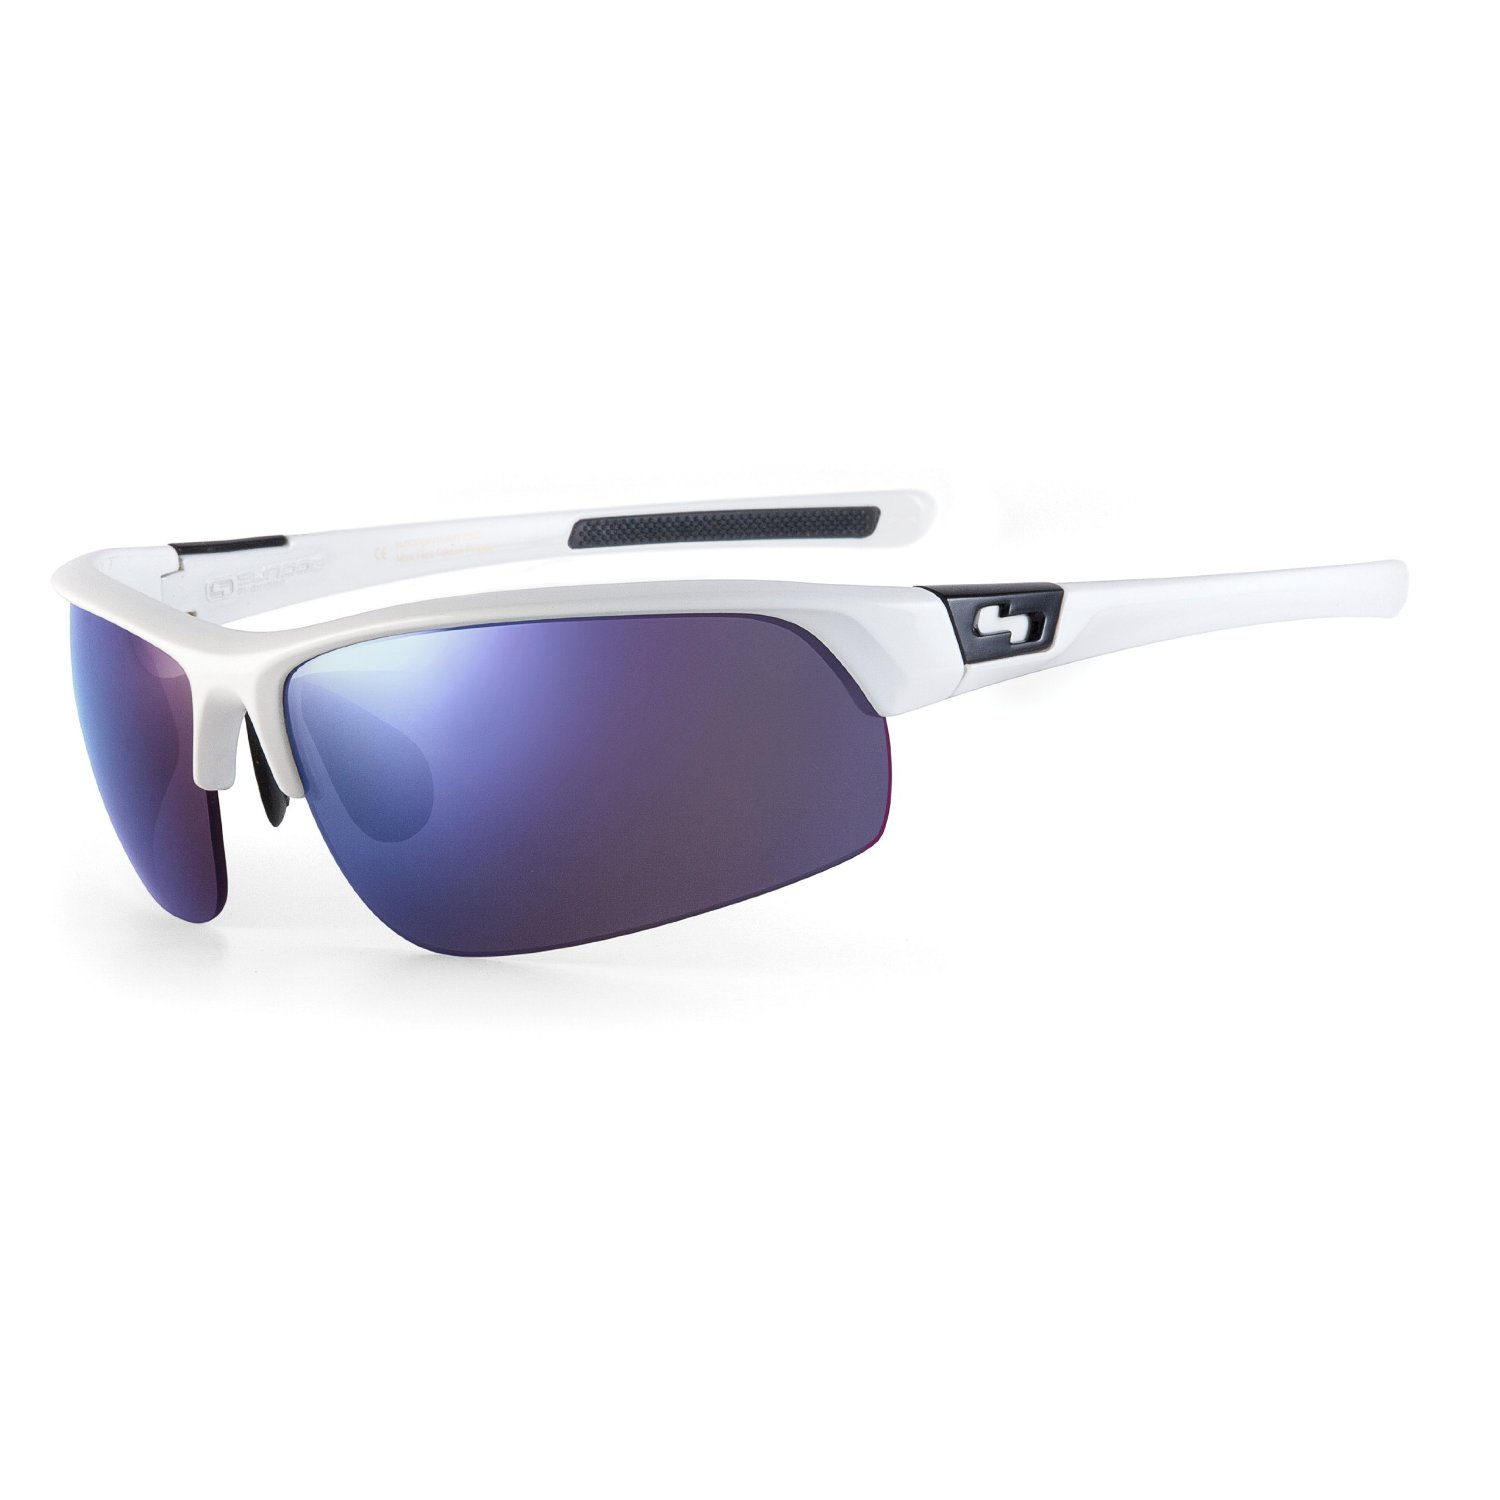 Sundog White Frames with Blue Lenses Mach Sunglasses